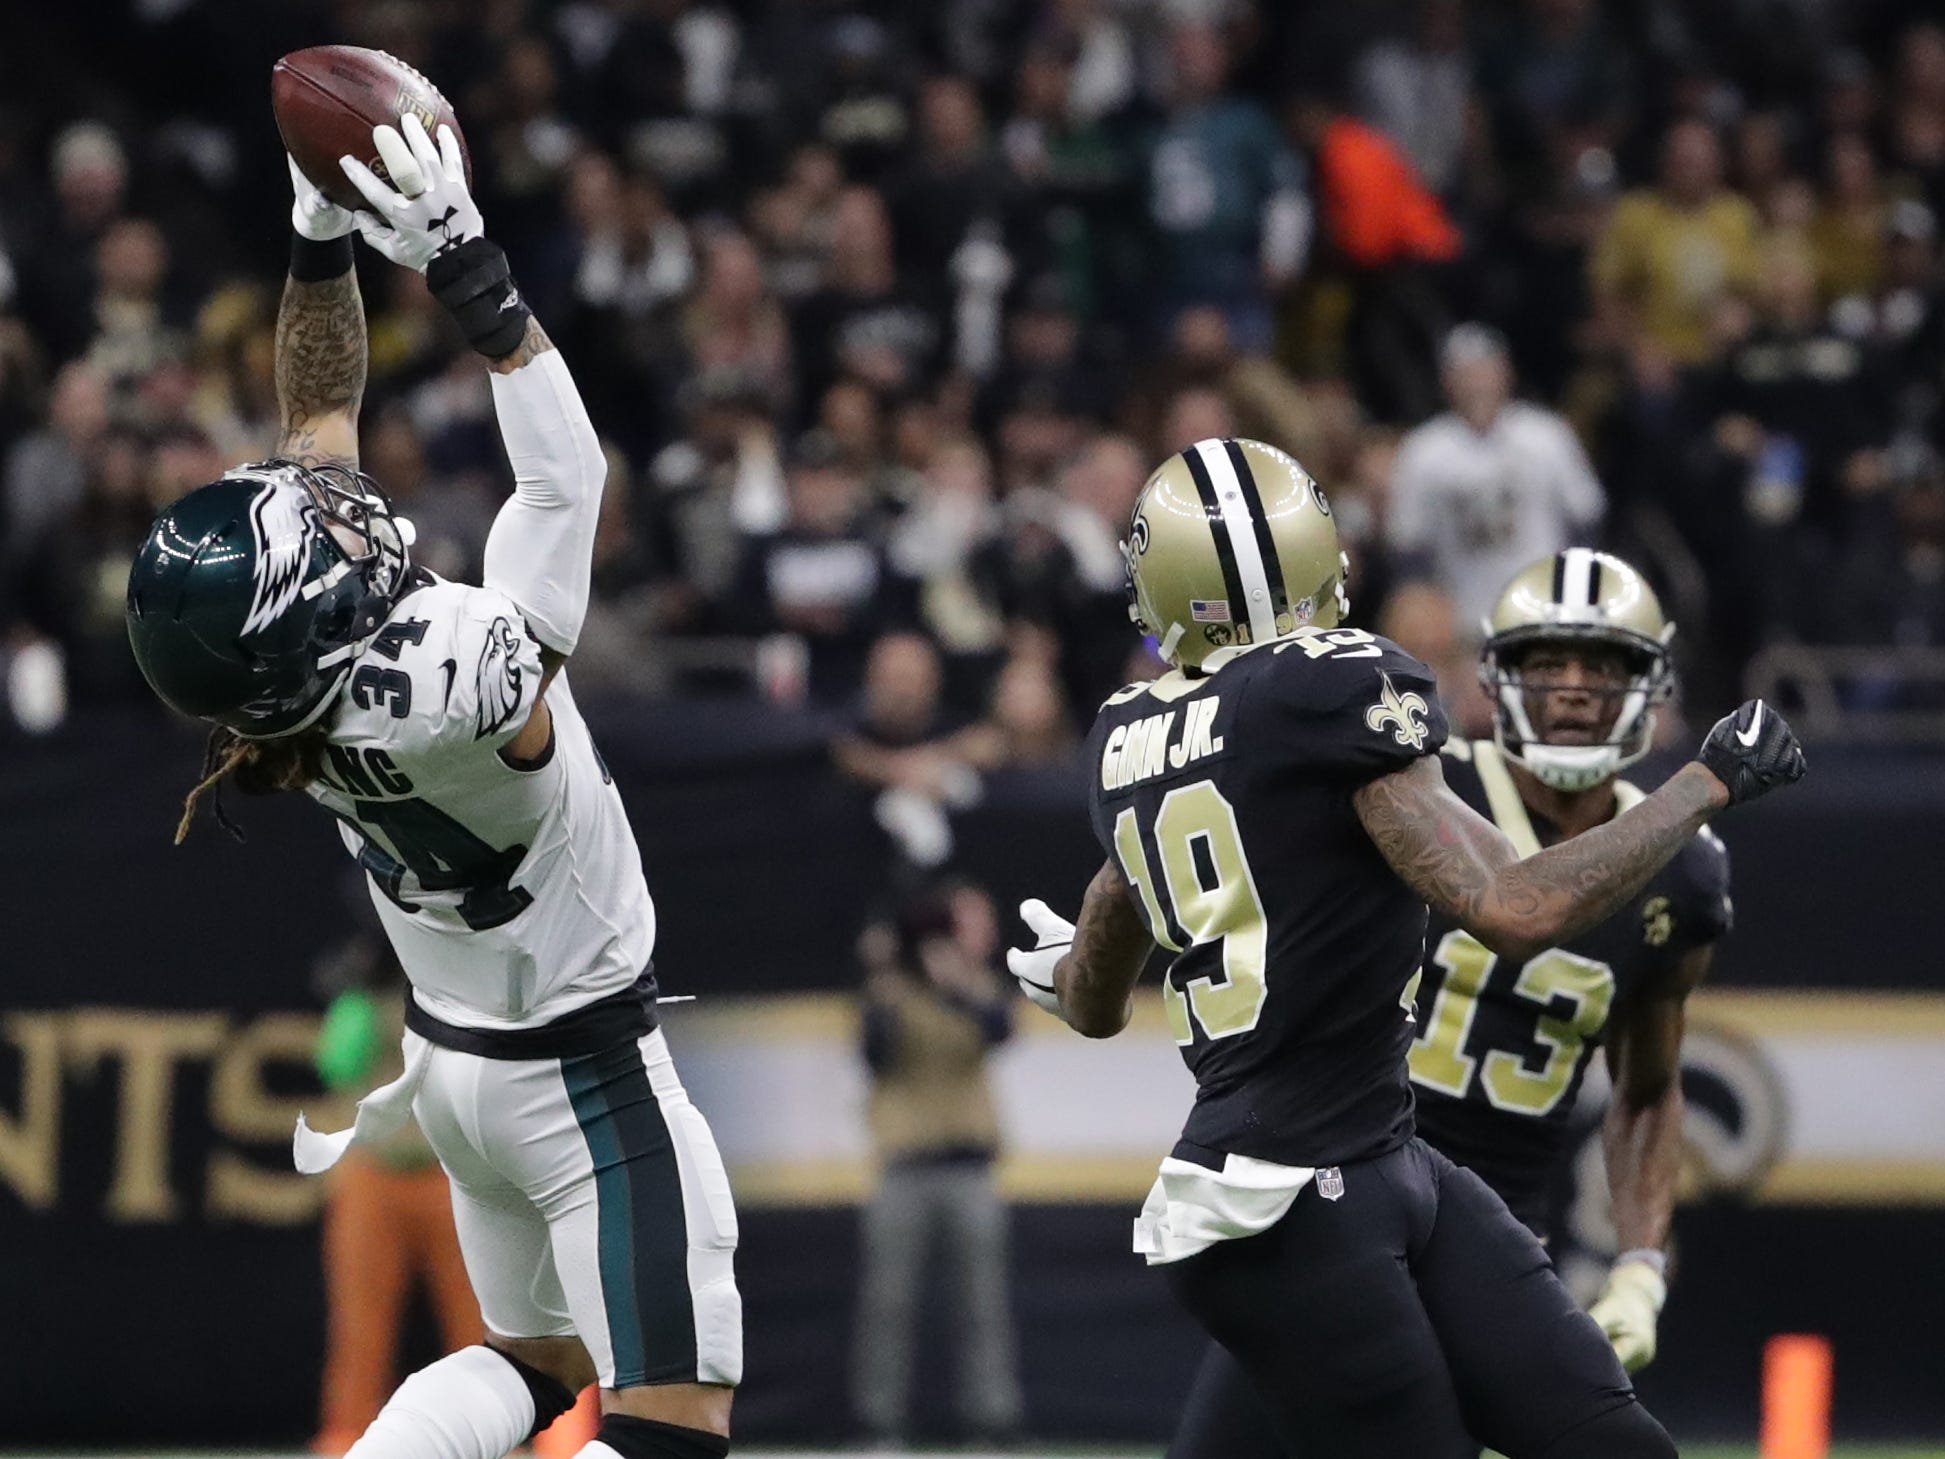 Philadelphia Eagles cornerback Cre'von LeBlanc  intercepts a pass intended for New Orleans Saints wide receiver Ted Ginn.